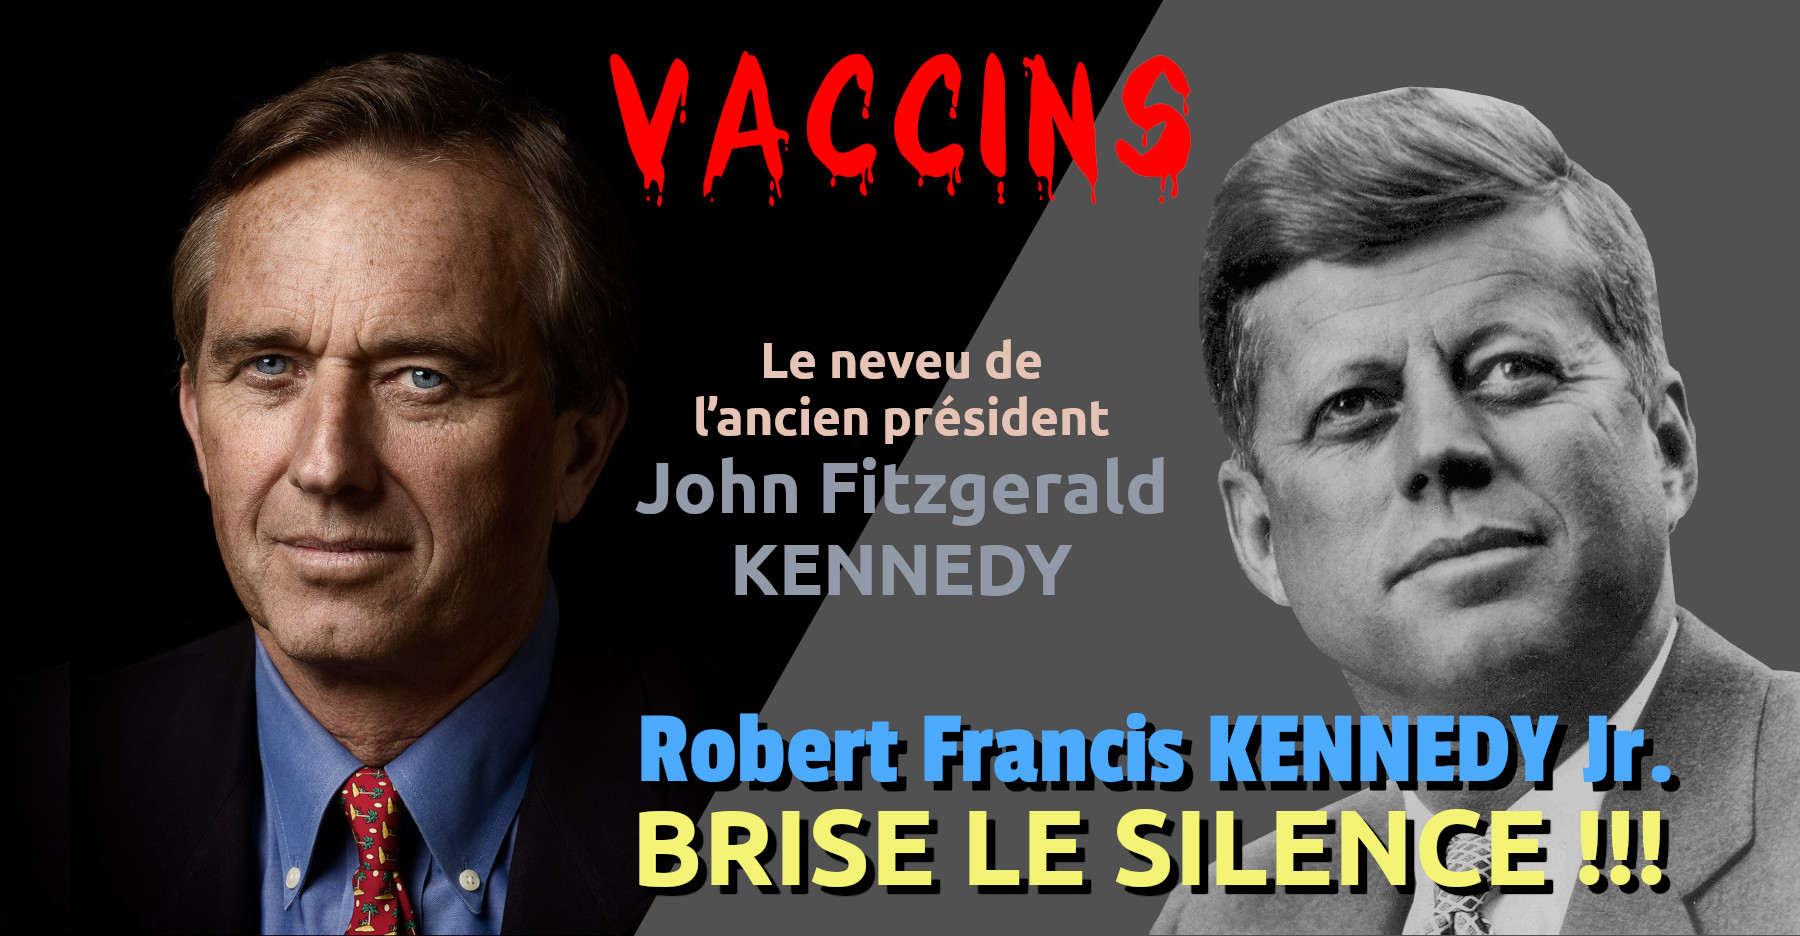 Robert Fitzgerald Kennedy Jr. Brise Le Silence !!!